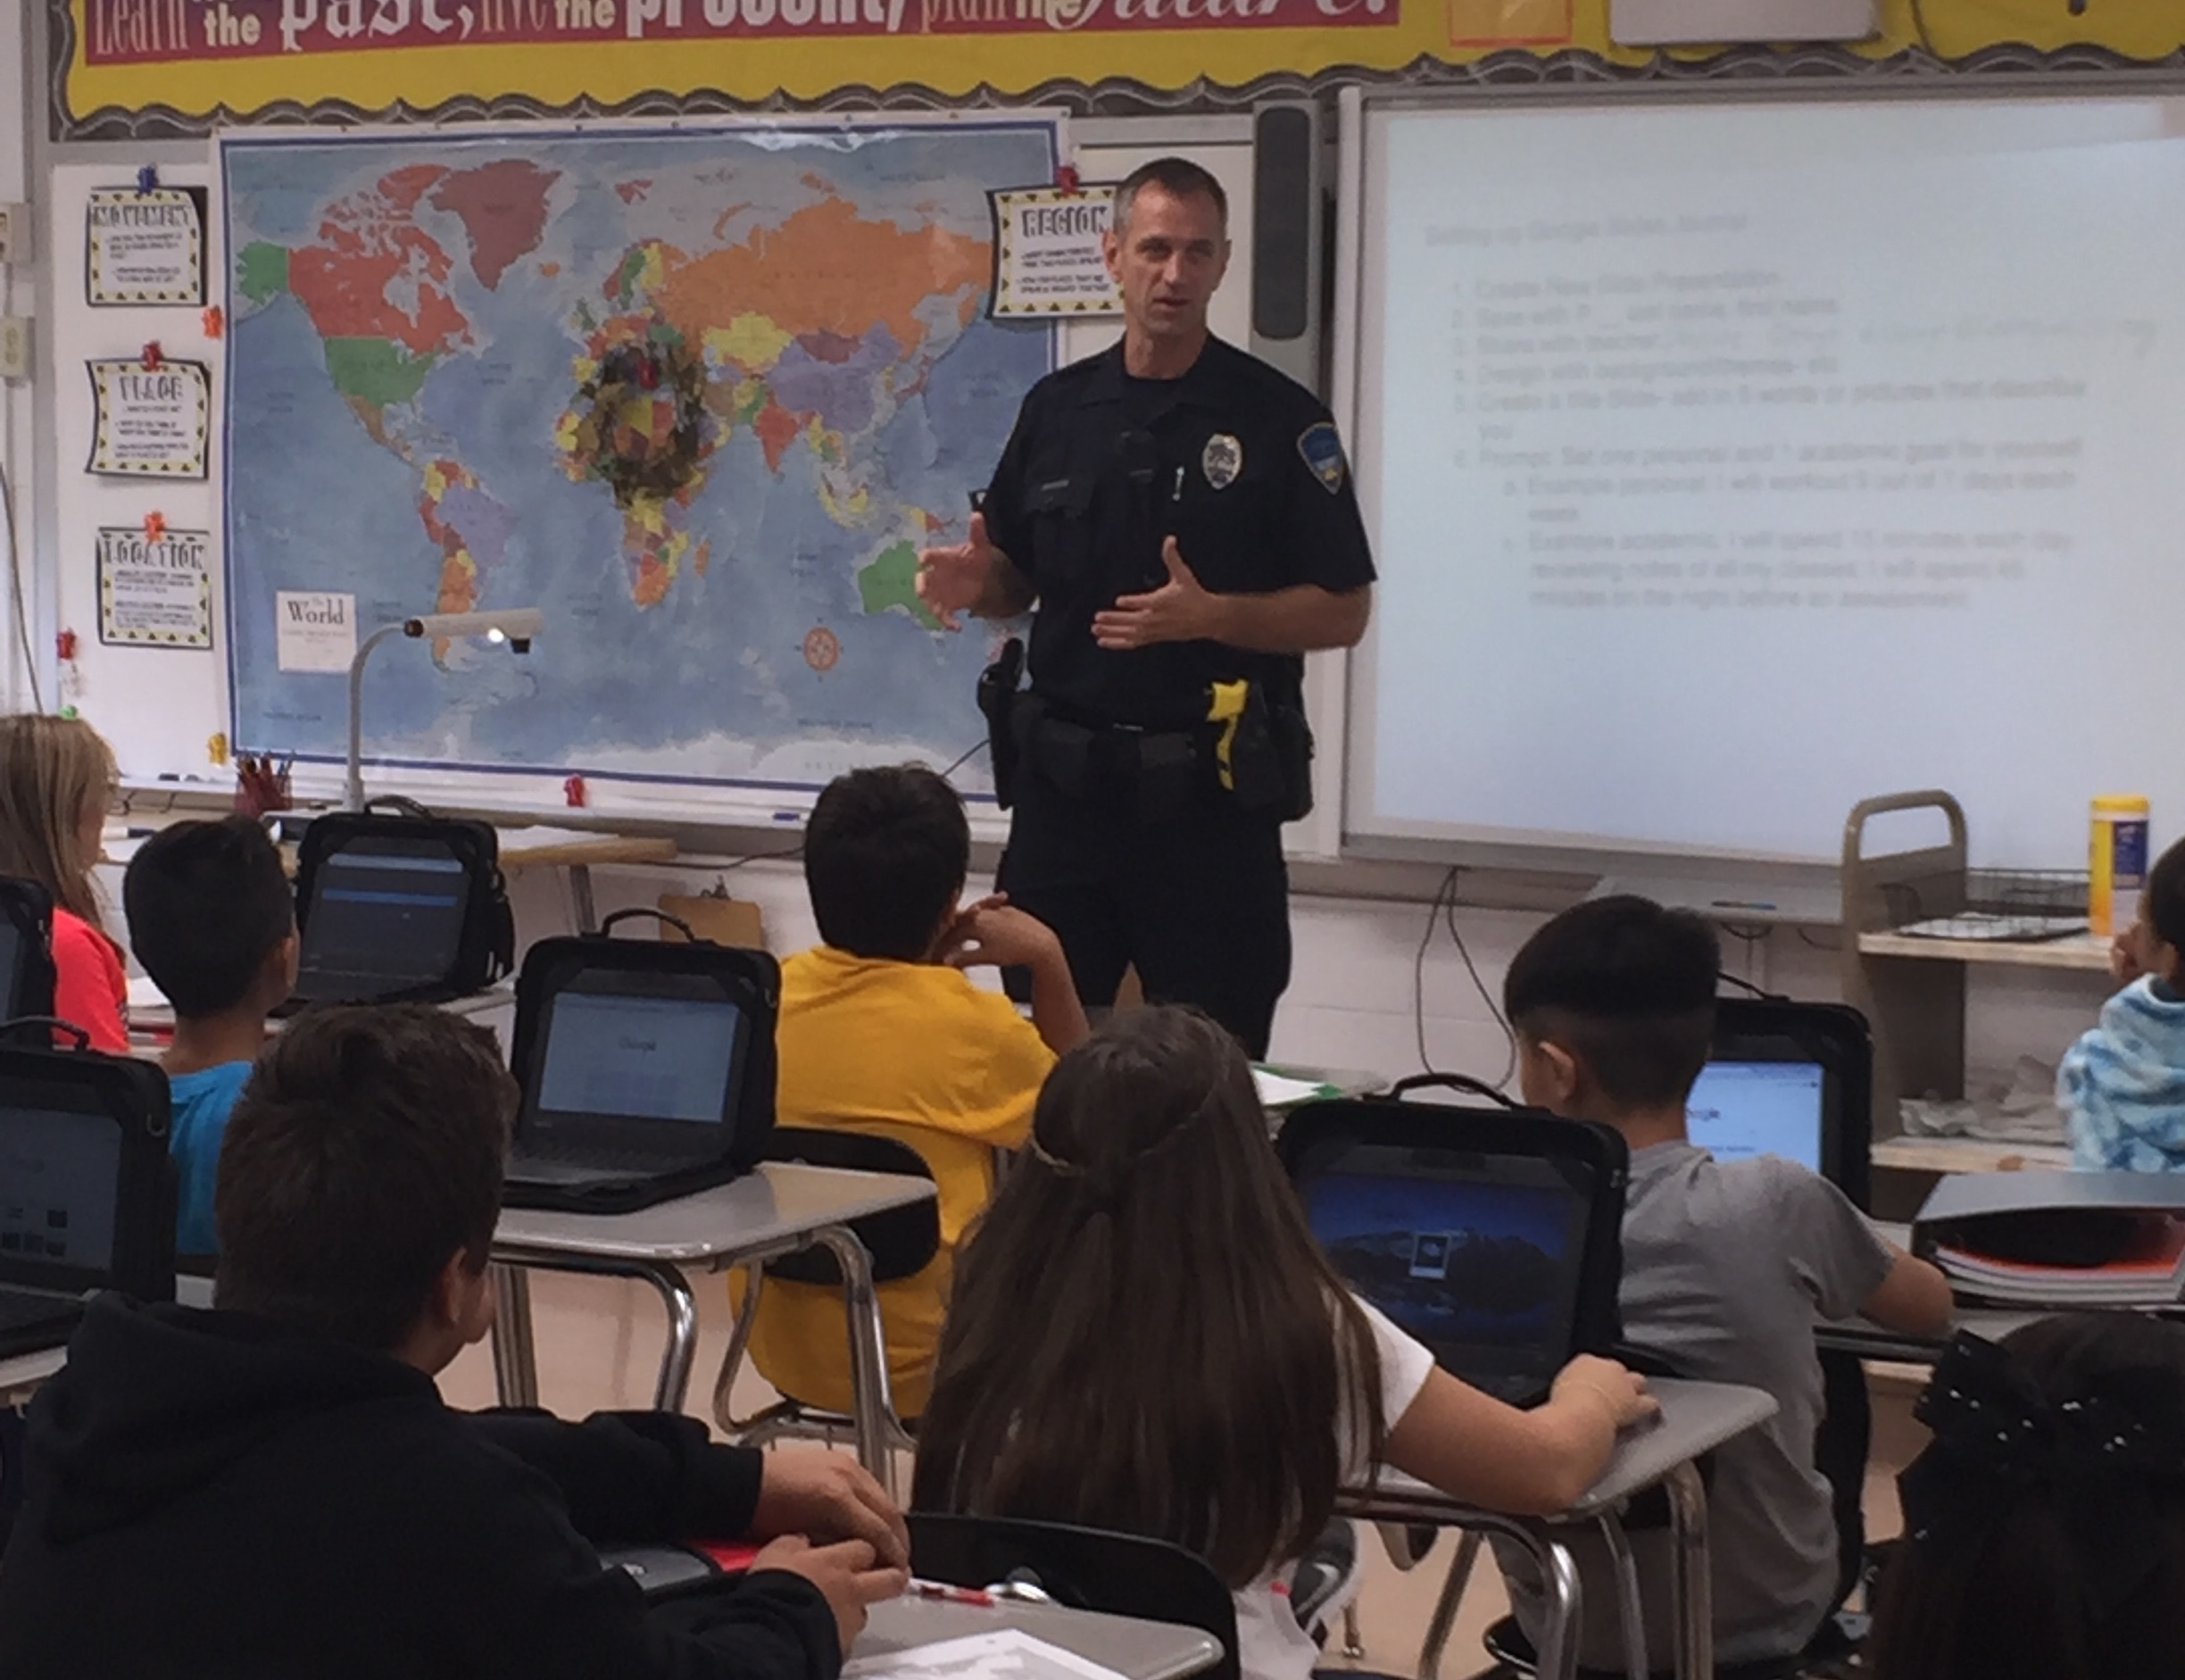 Officer Potter speaking to students